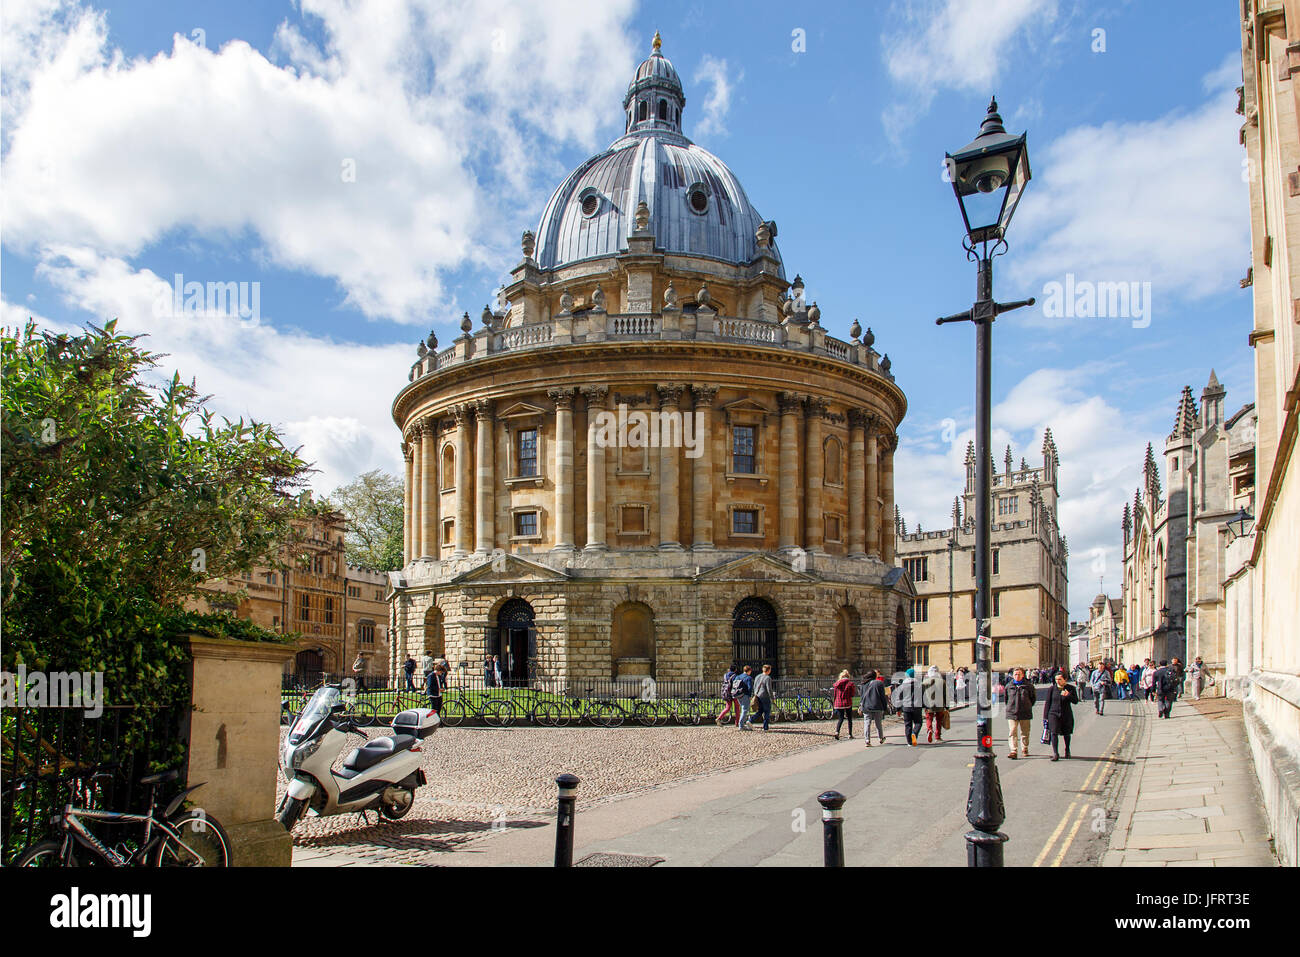 The Radcliffe Camera Building Located At Oxford University Stock - Where is oxford located